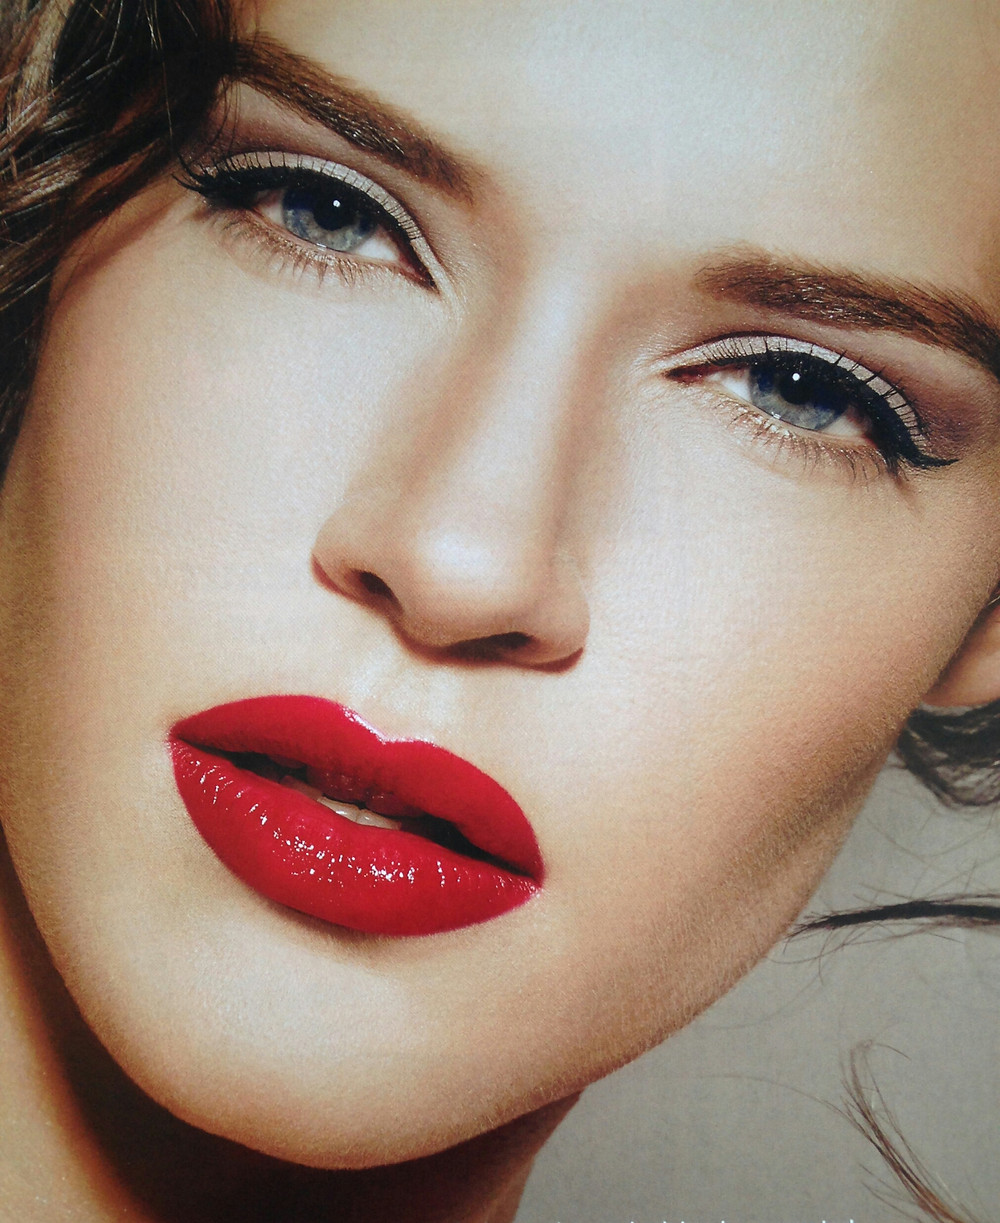 Red lips are thought to be the sexiest!